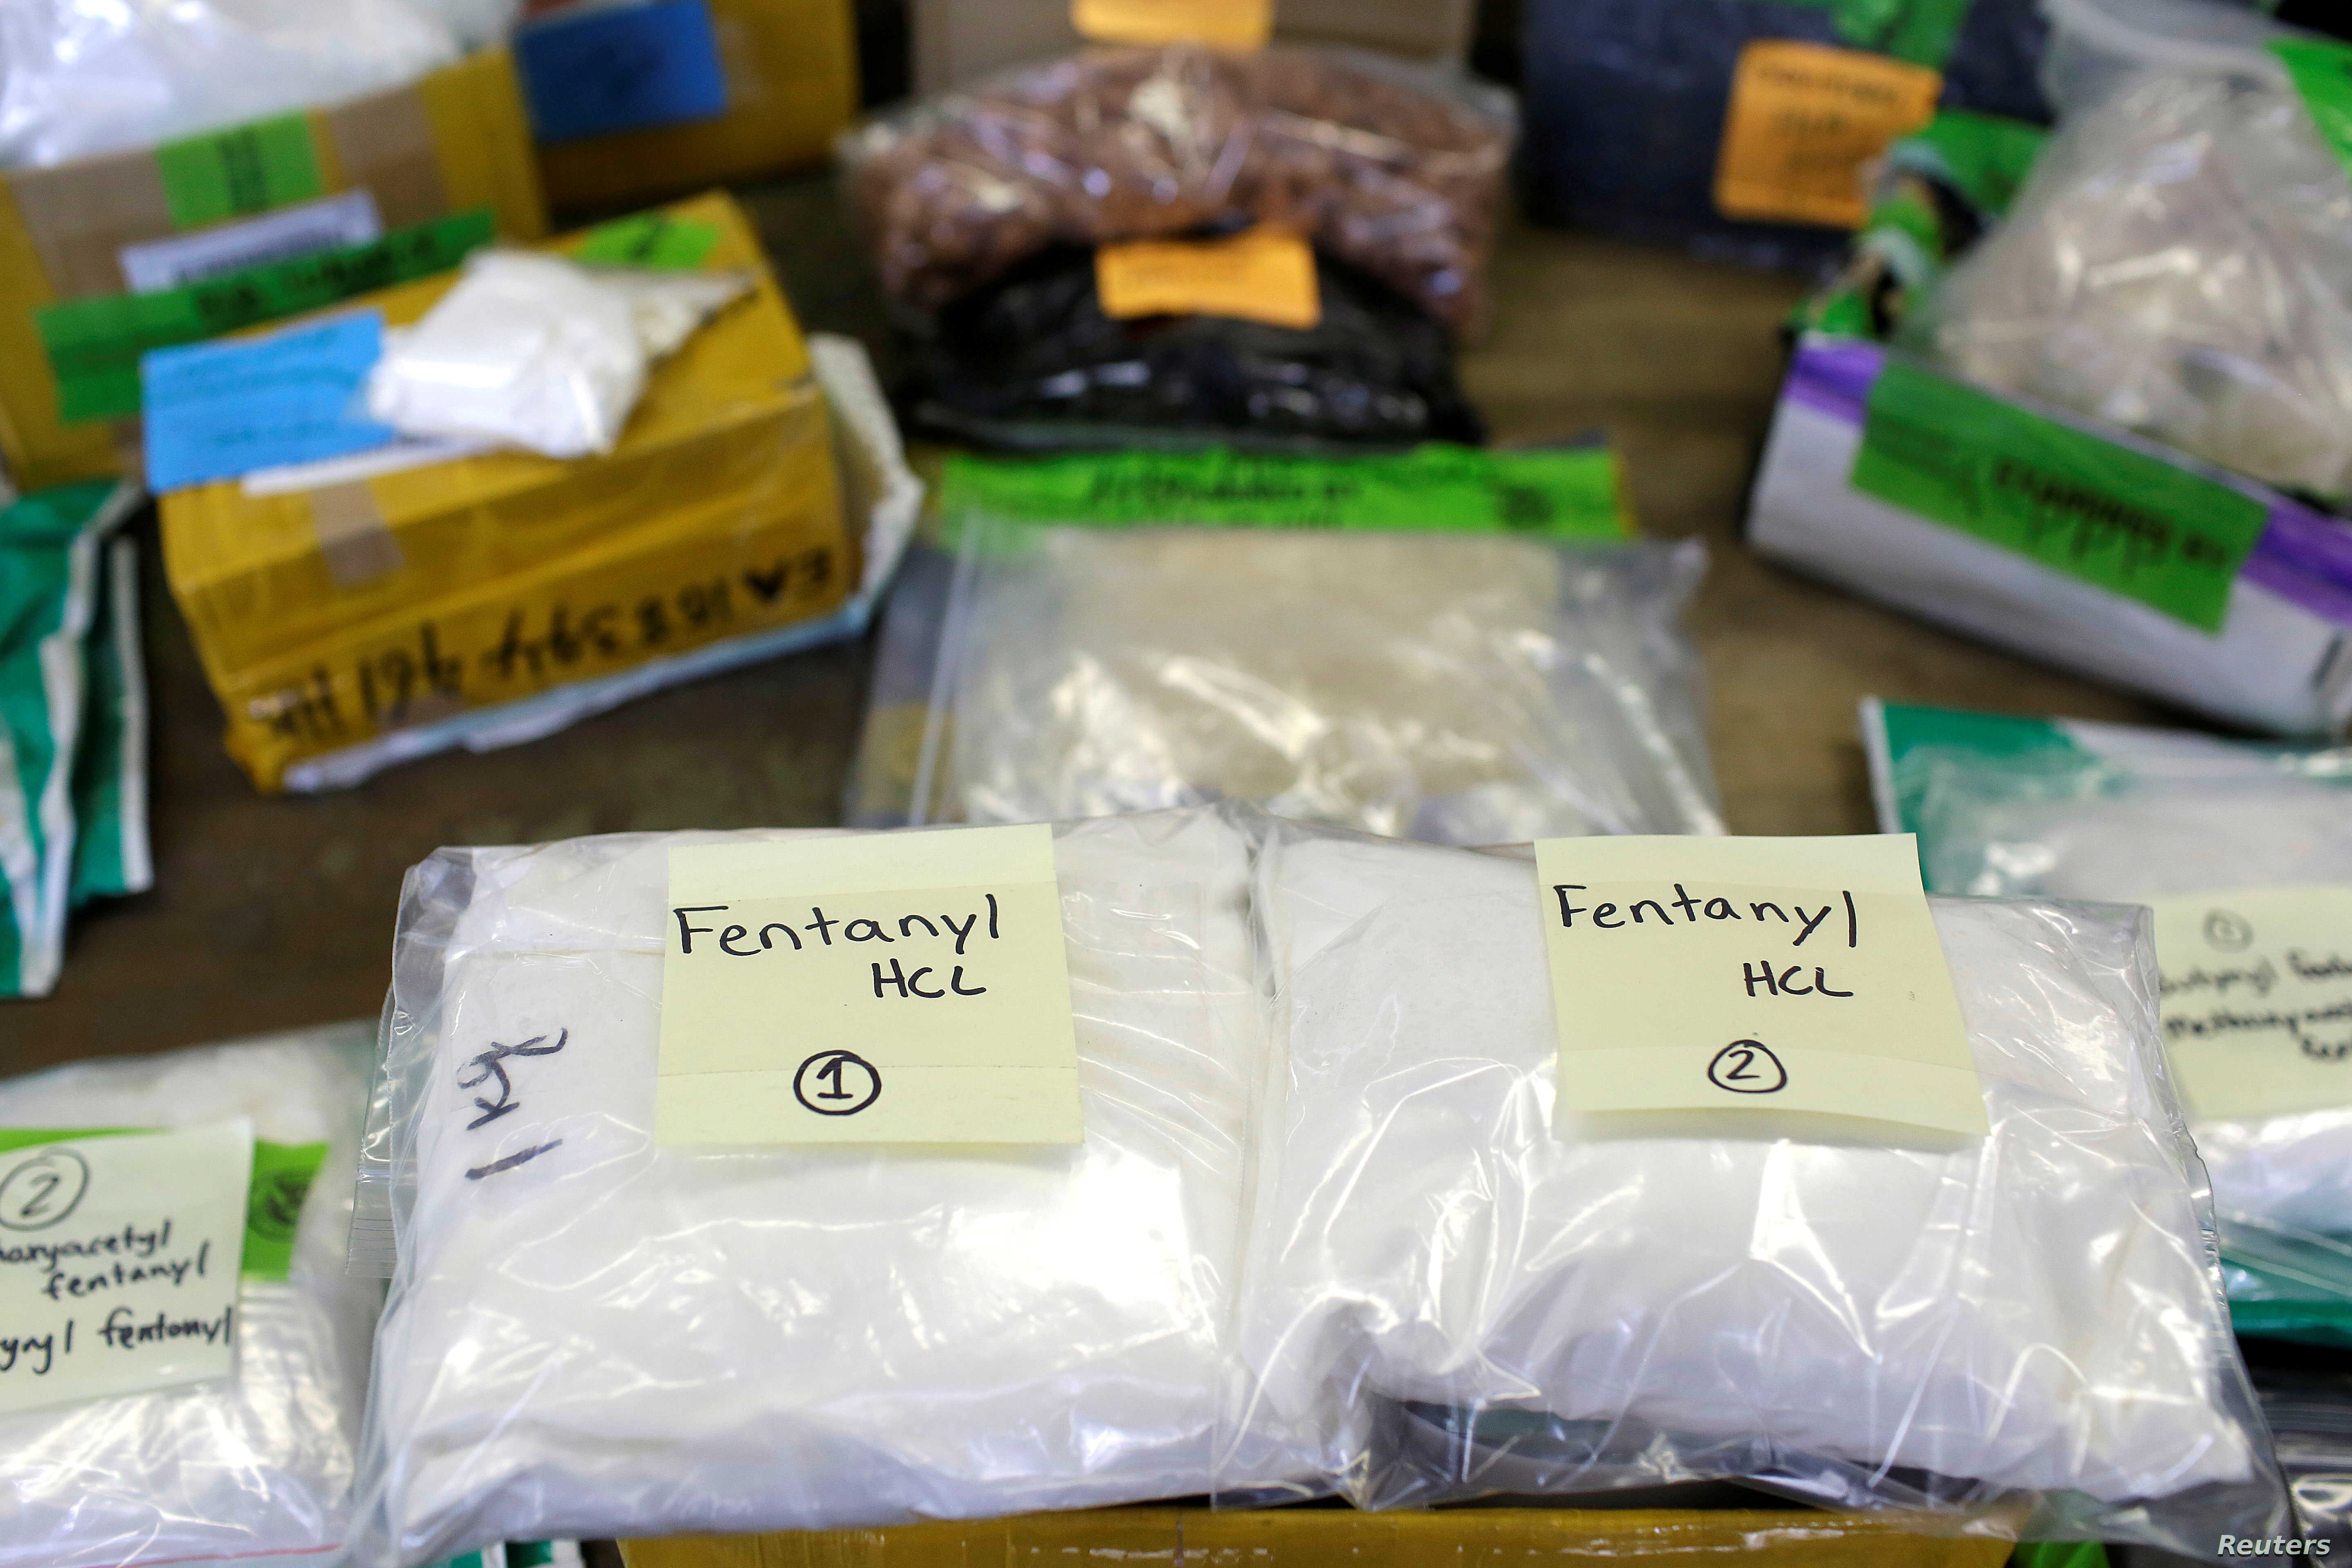 FILE - Plastic bags of Fentanyl are displayed on a table at the U.S. Customs and Border Protection area at the International Mail Facility at O'Hare International Airport in Chicago, Illinois, Nov. 29, 2017.